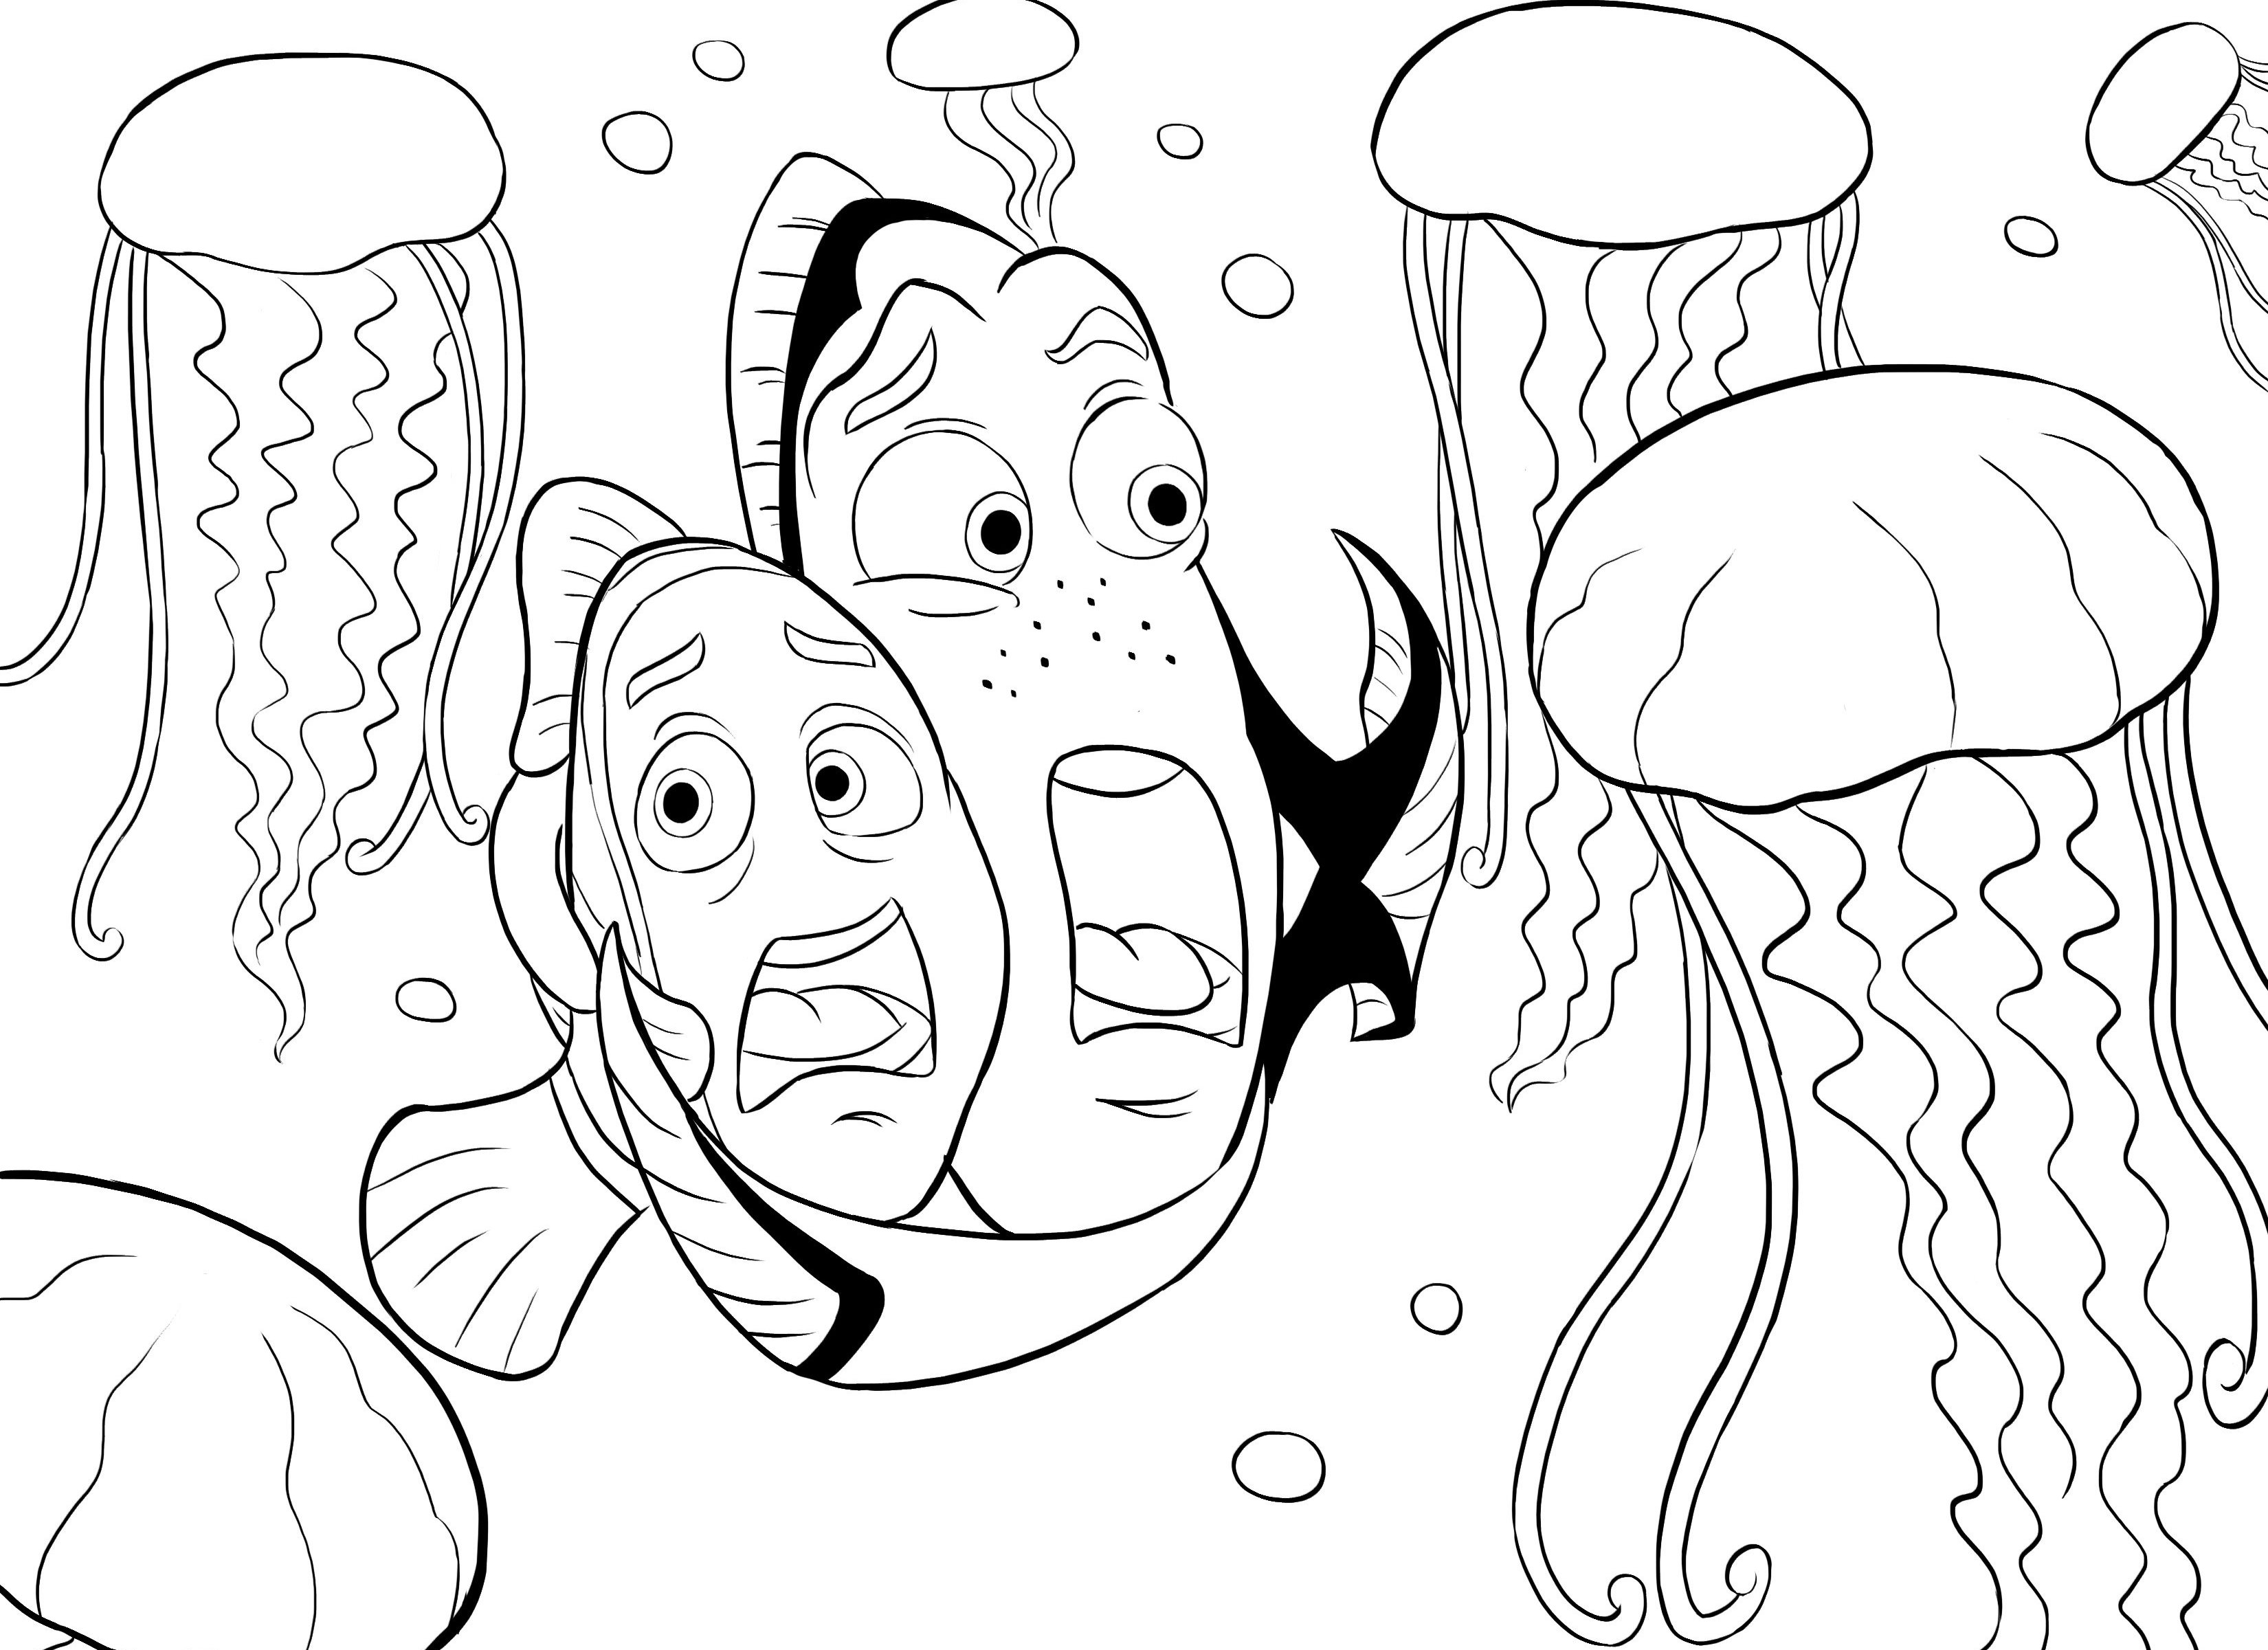 Nemo coloring cute fish for Finding nemo coloring pages free